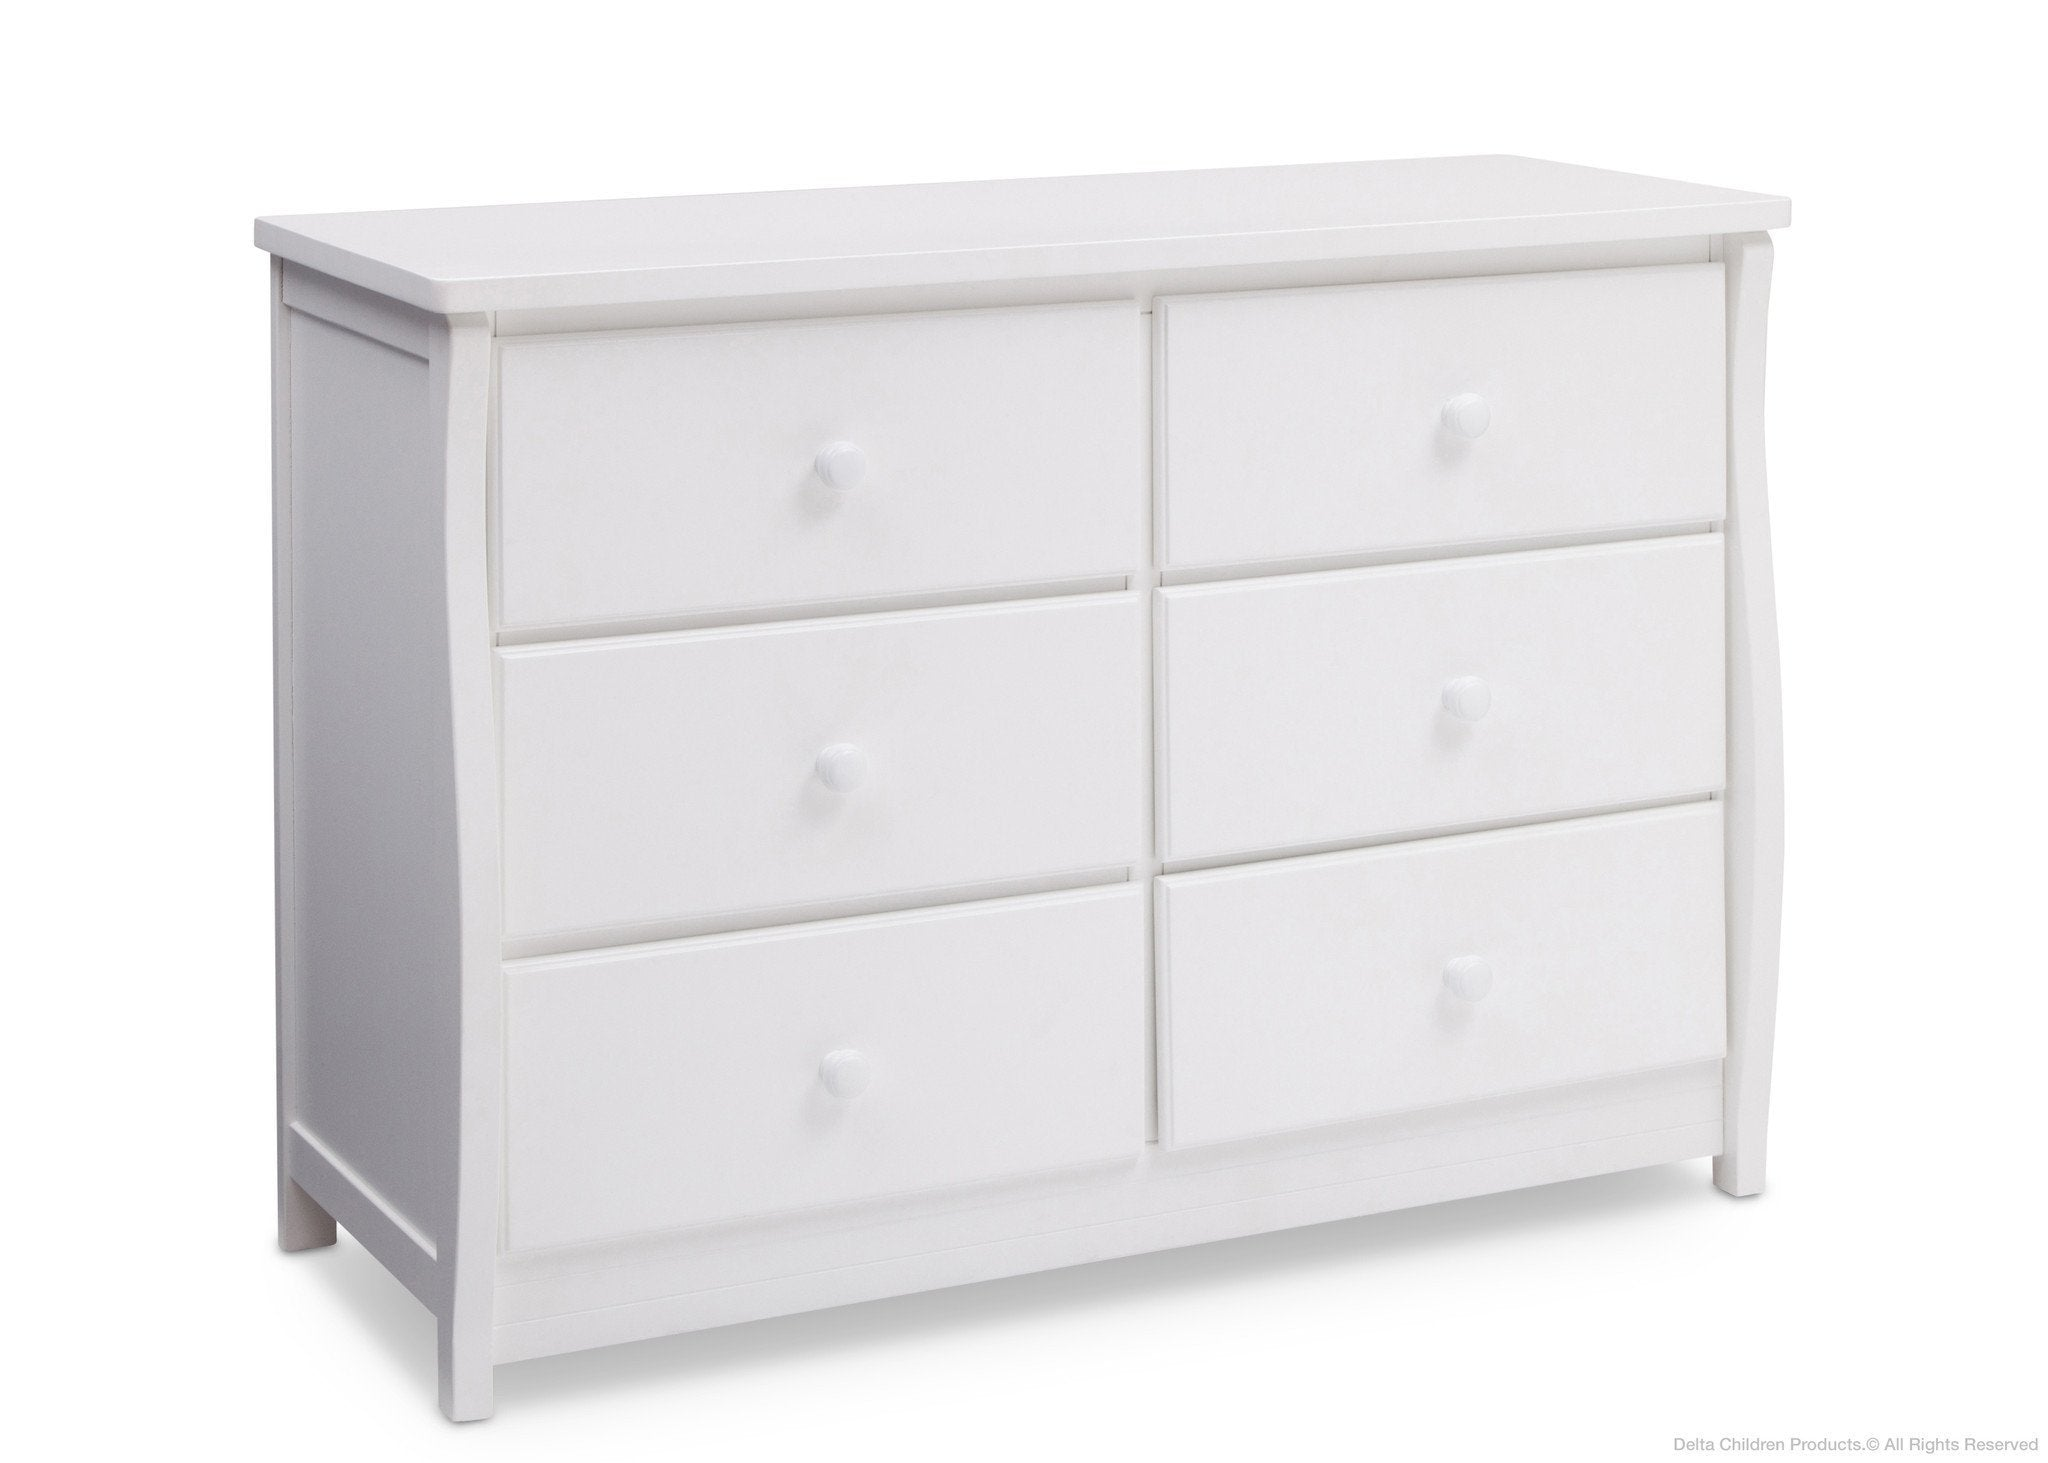 Delta Children Bianca White (130) Clermont 6 Drawer Dresser, Side View a1a